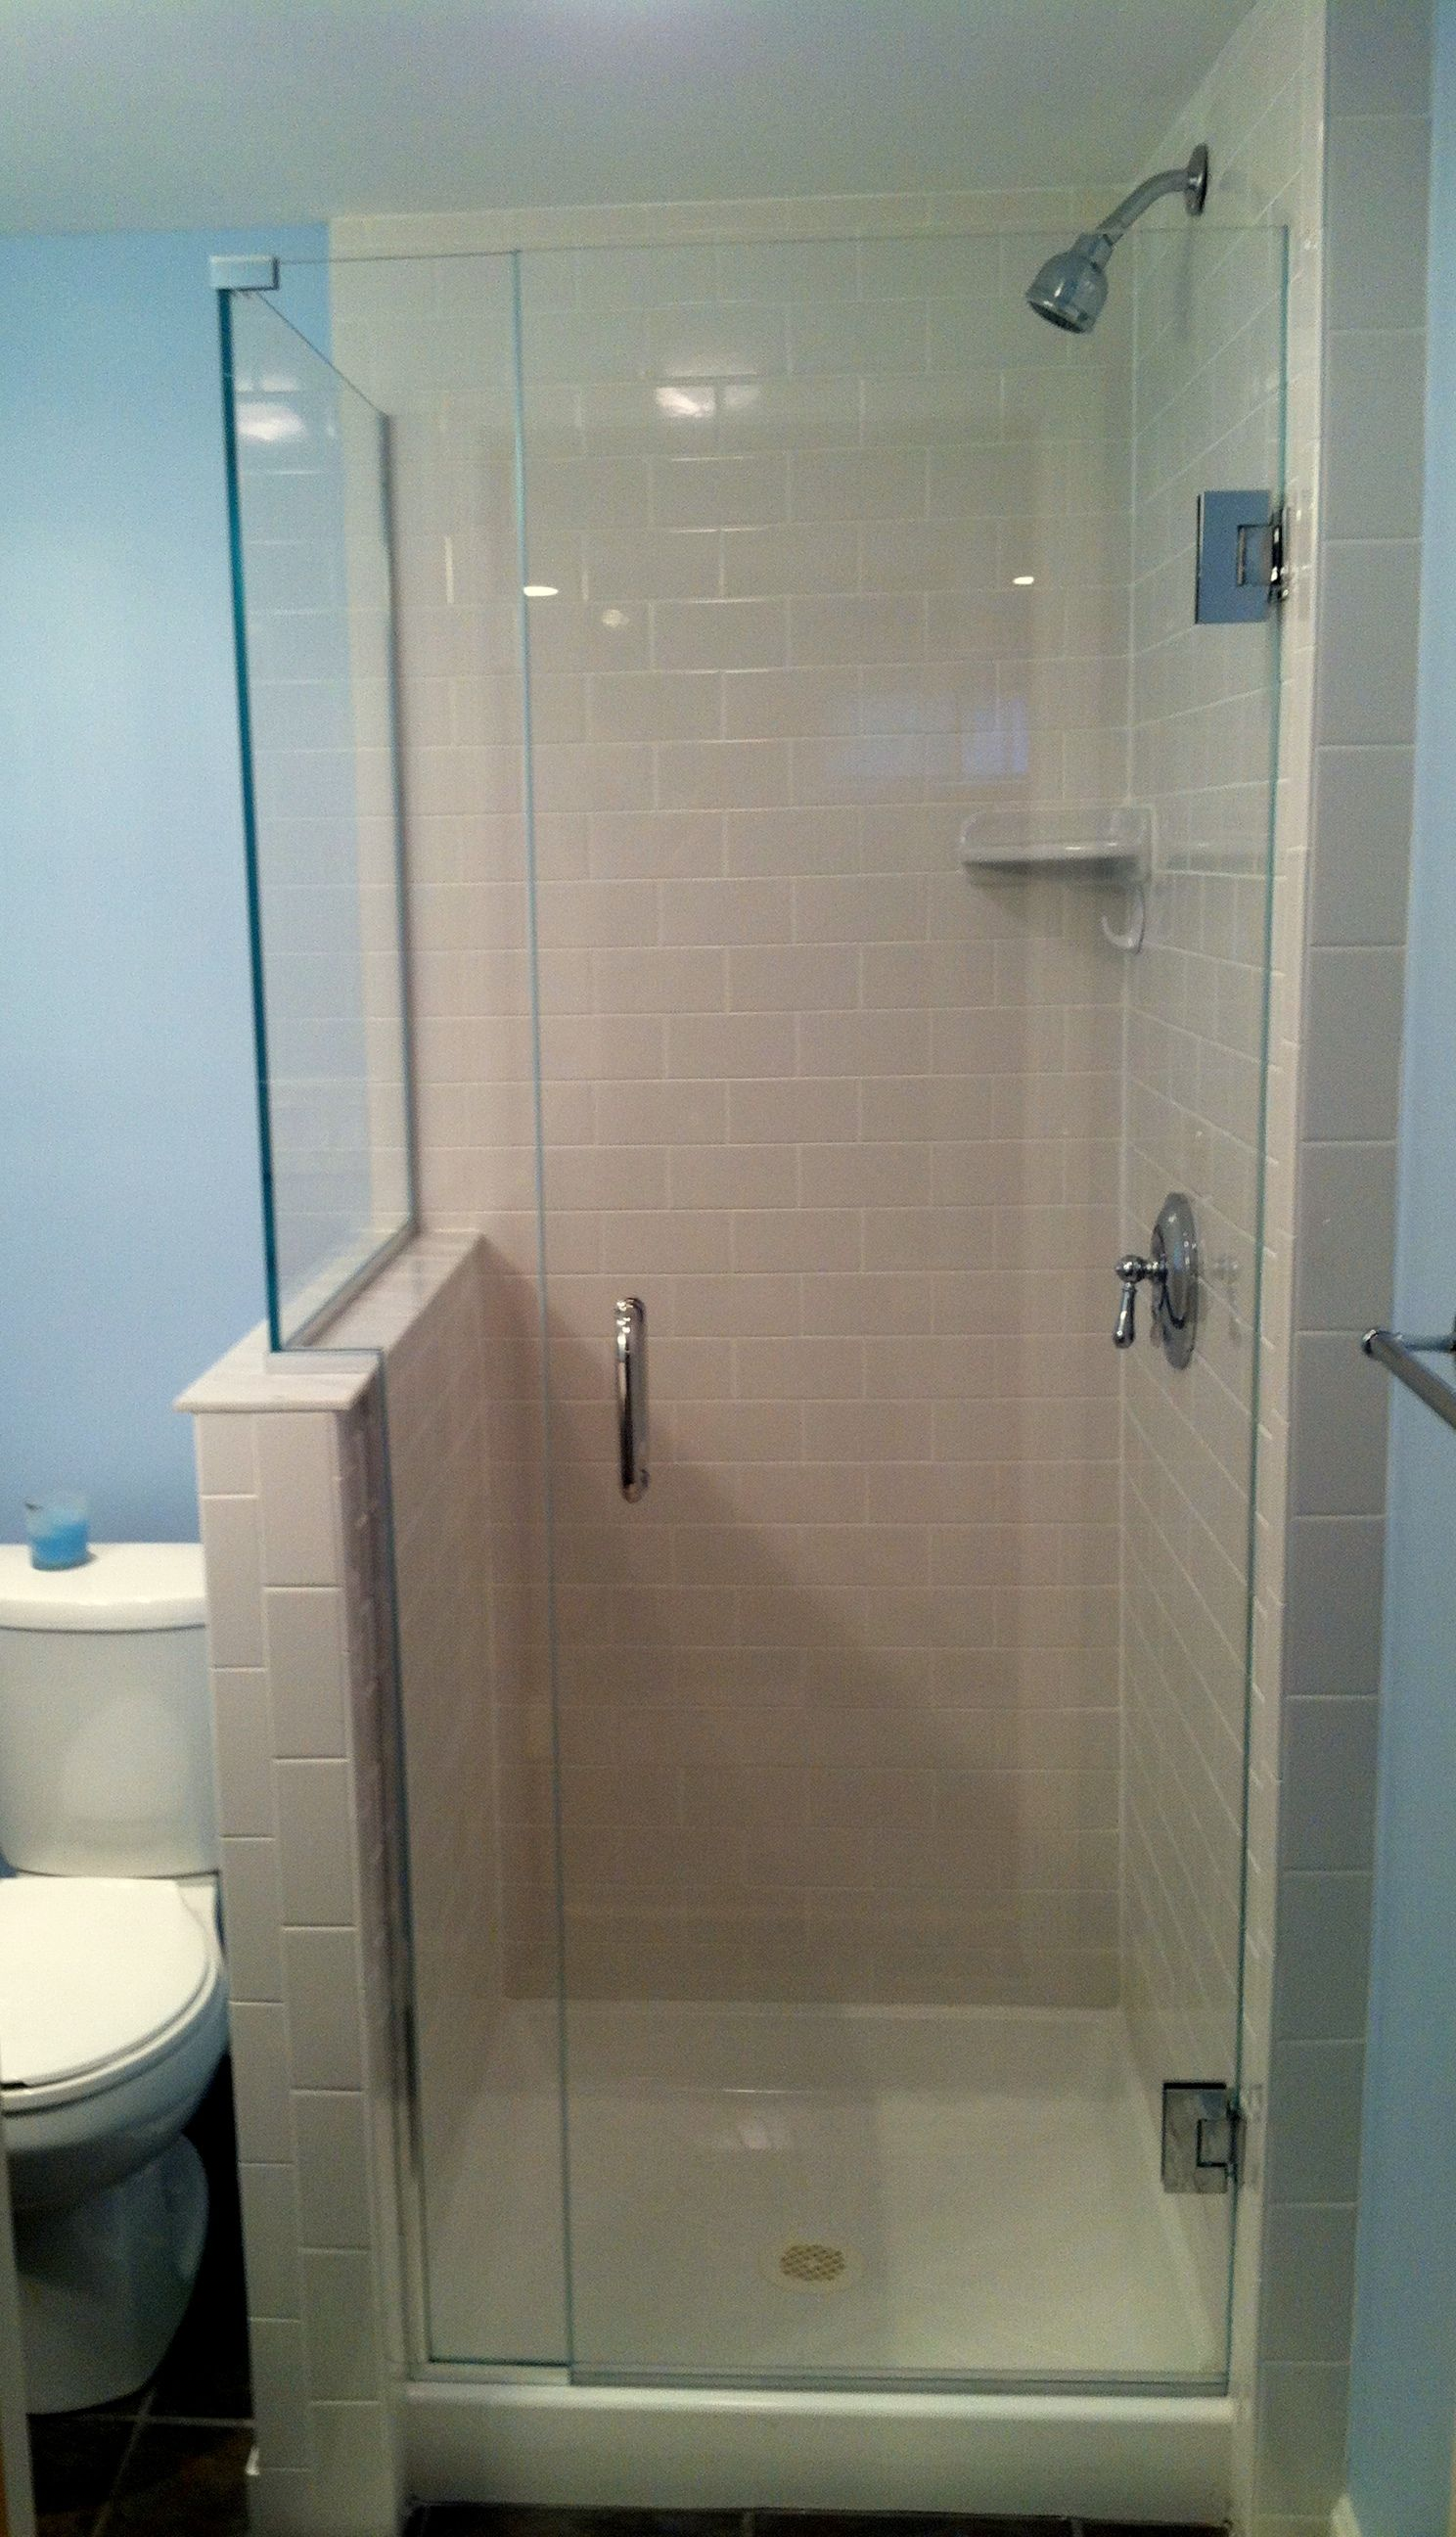 Compact Shower Door Solution This 32 X 32 Base Has A Frameless 3 8 Thick Glass Shower Door Wall Mounted With The P Glass Shower Shower Remodel Shower Doors